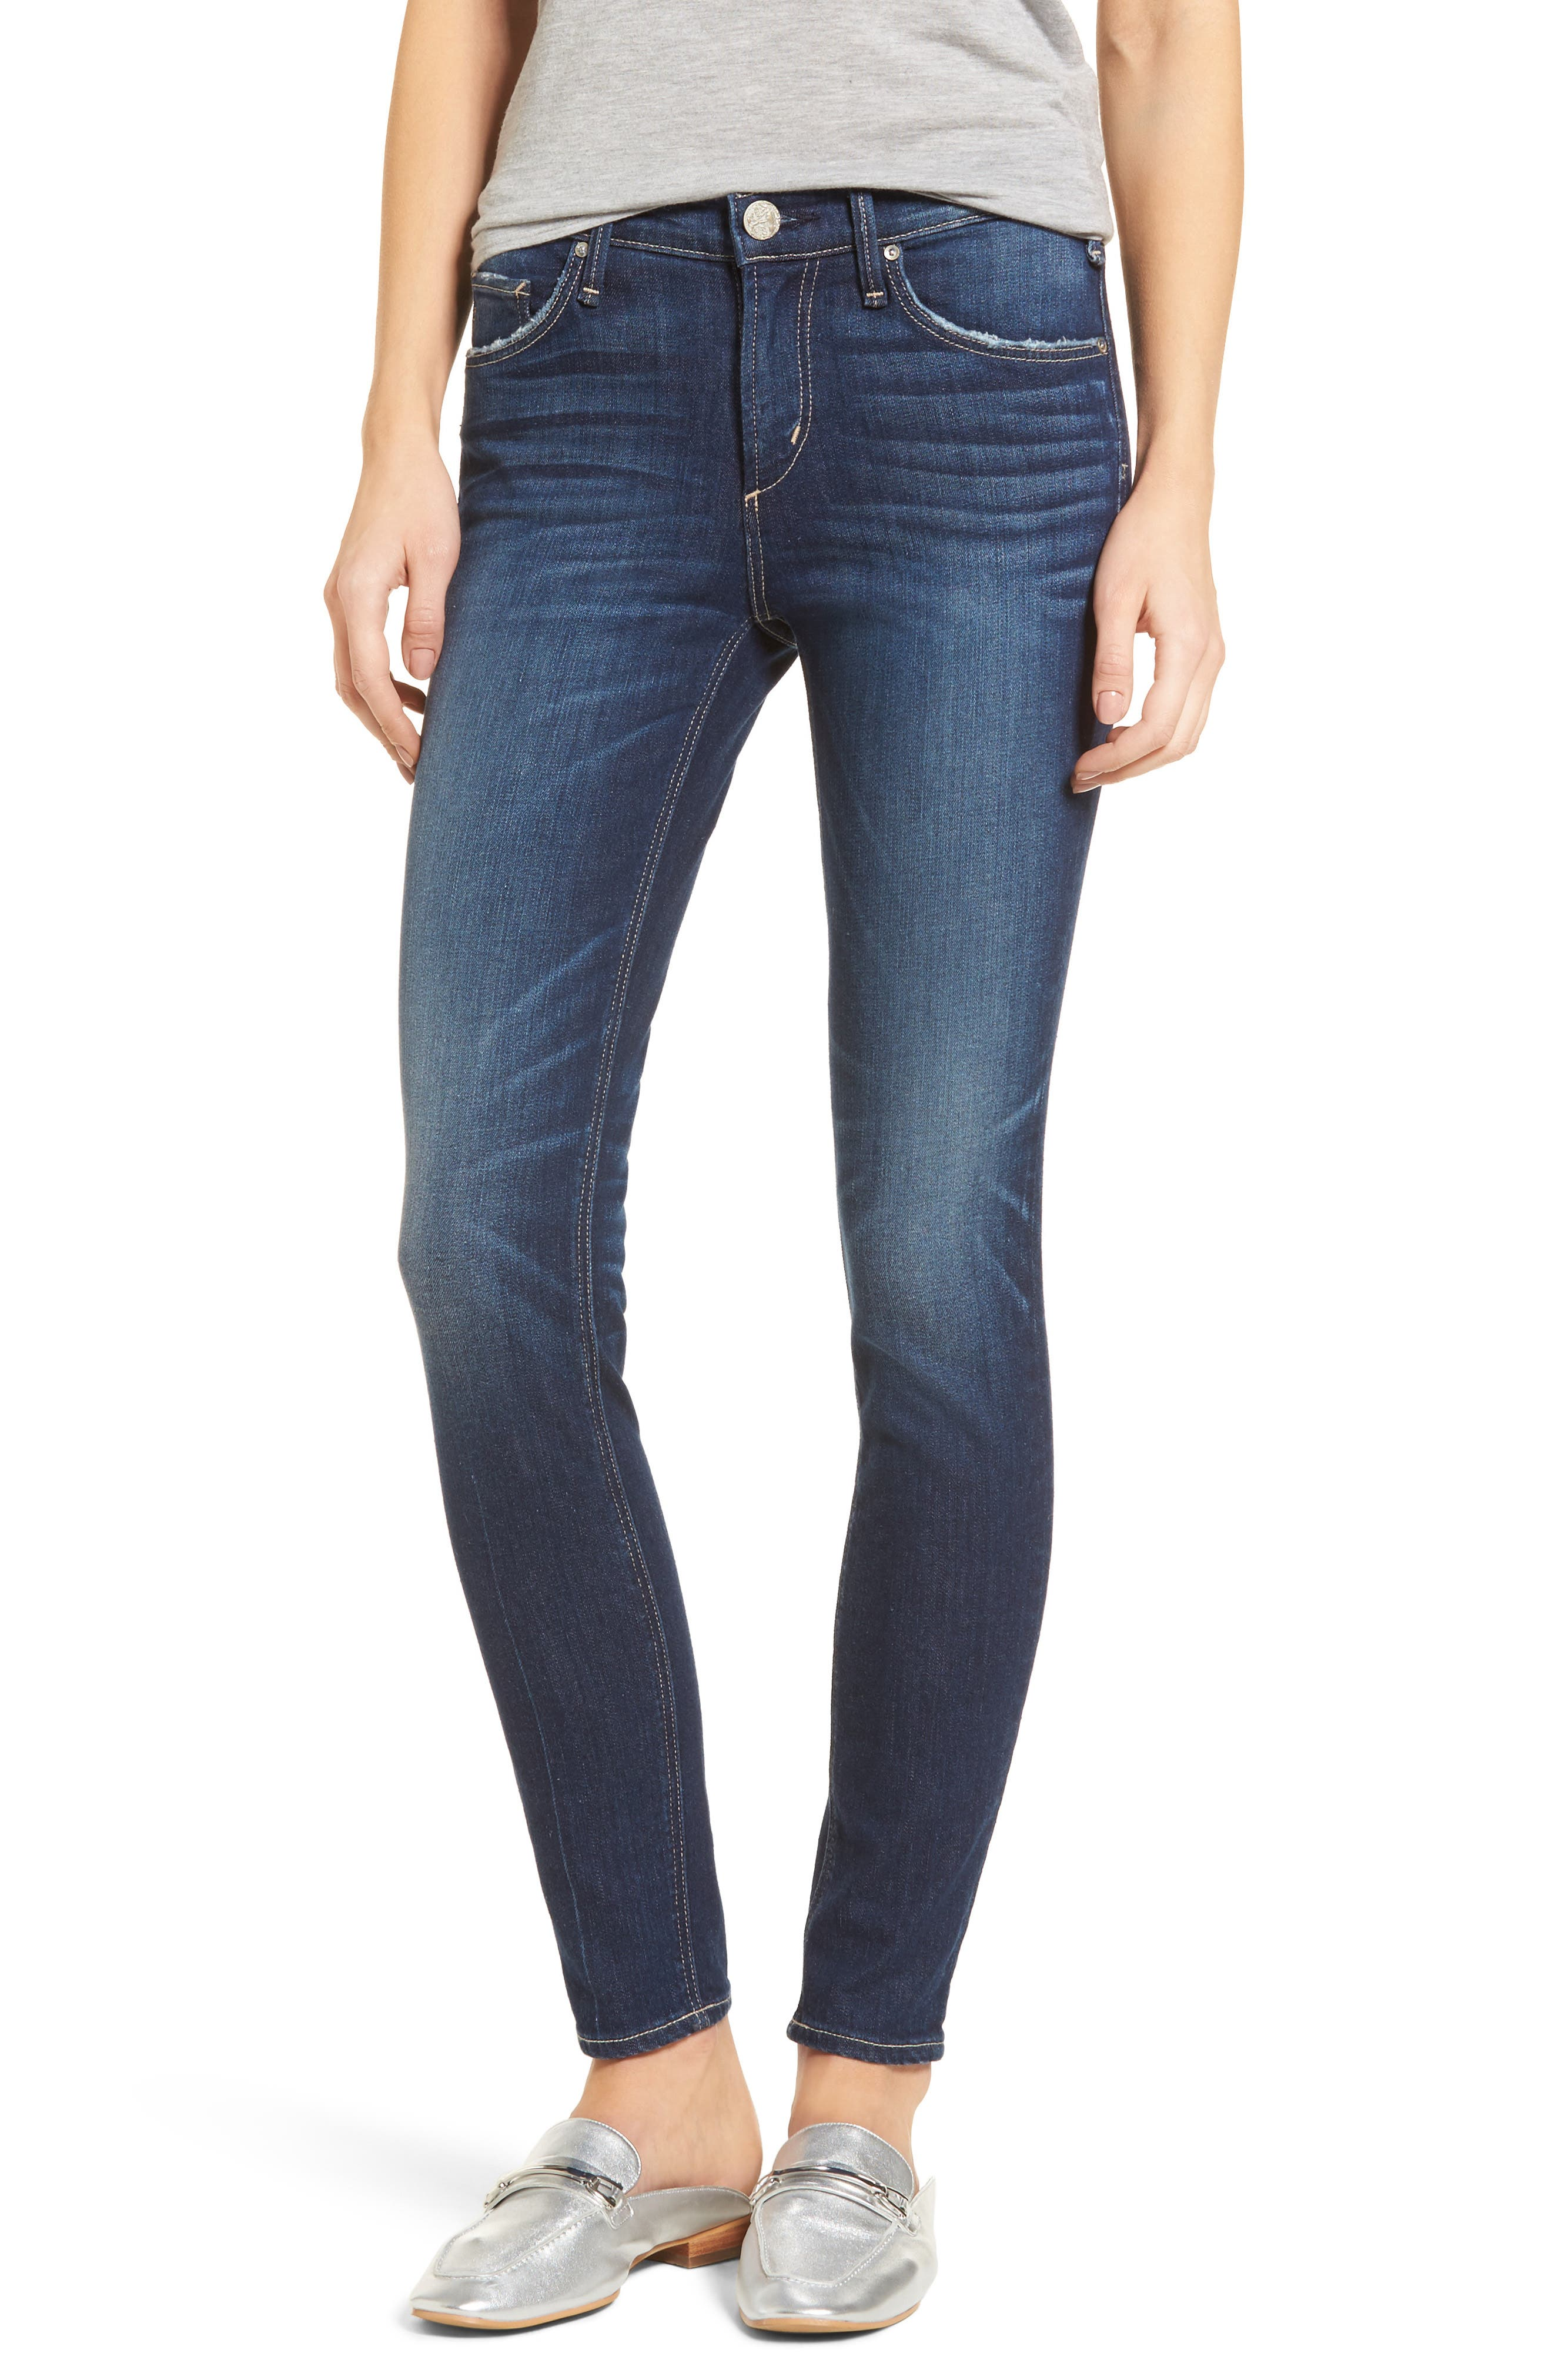 McGuire Newton Skinny Jeans (Chateau)